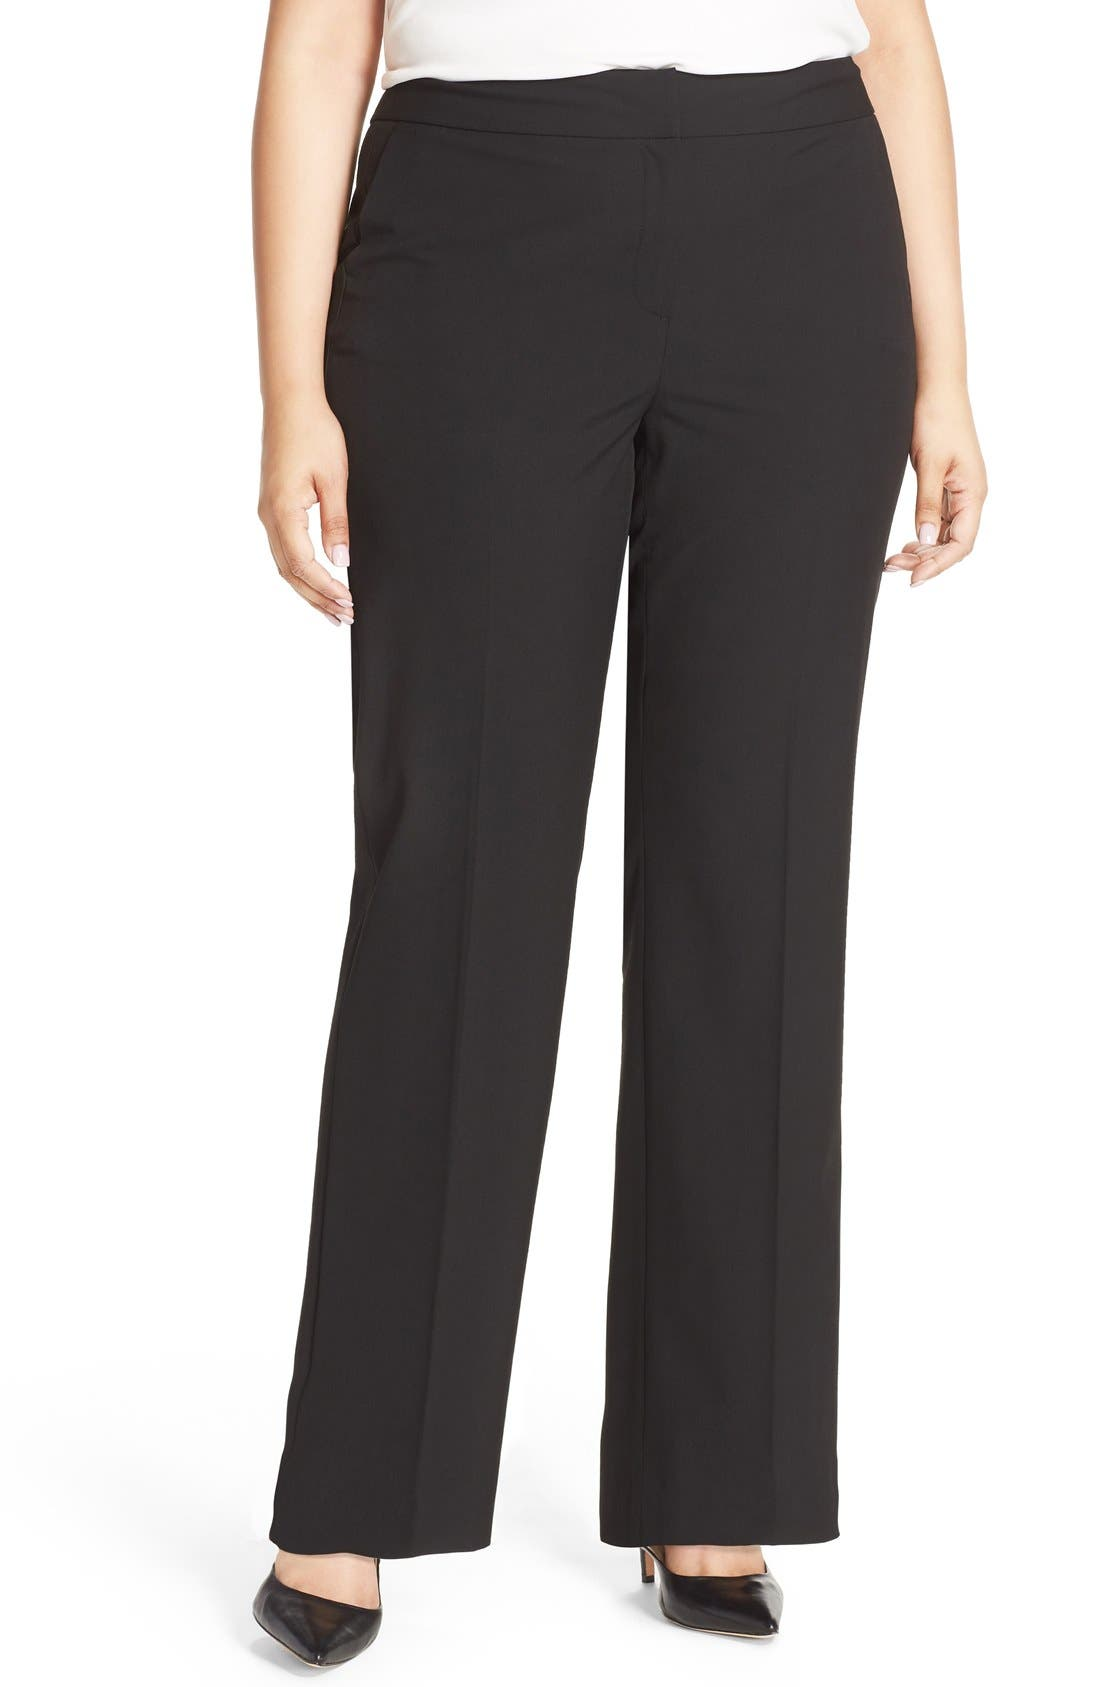 Sejour 'Ela' Stretch Curvy Fit Wide Leg Suit Pants (Plus Size & Petite Plus)